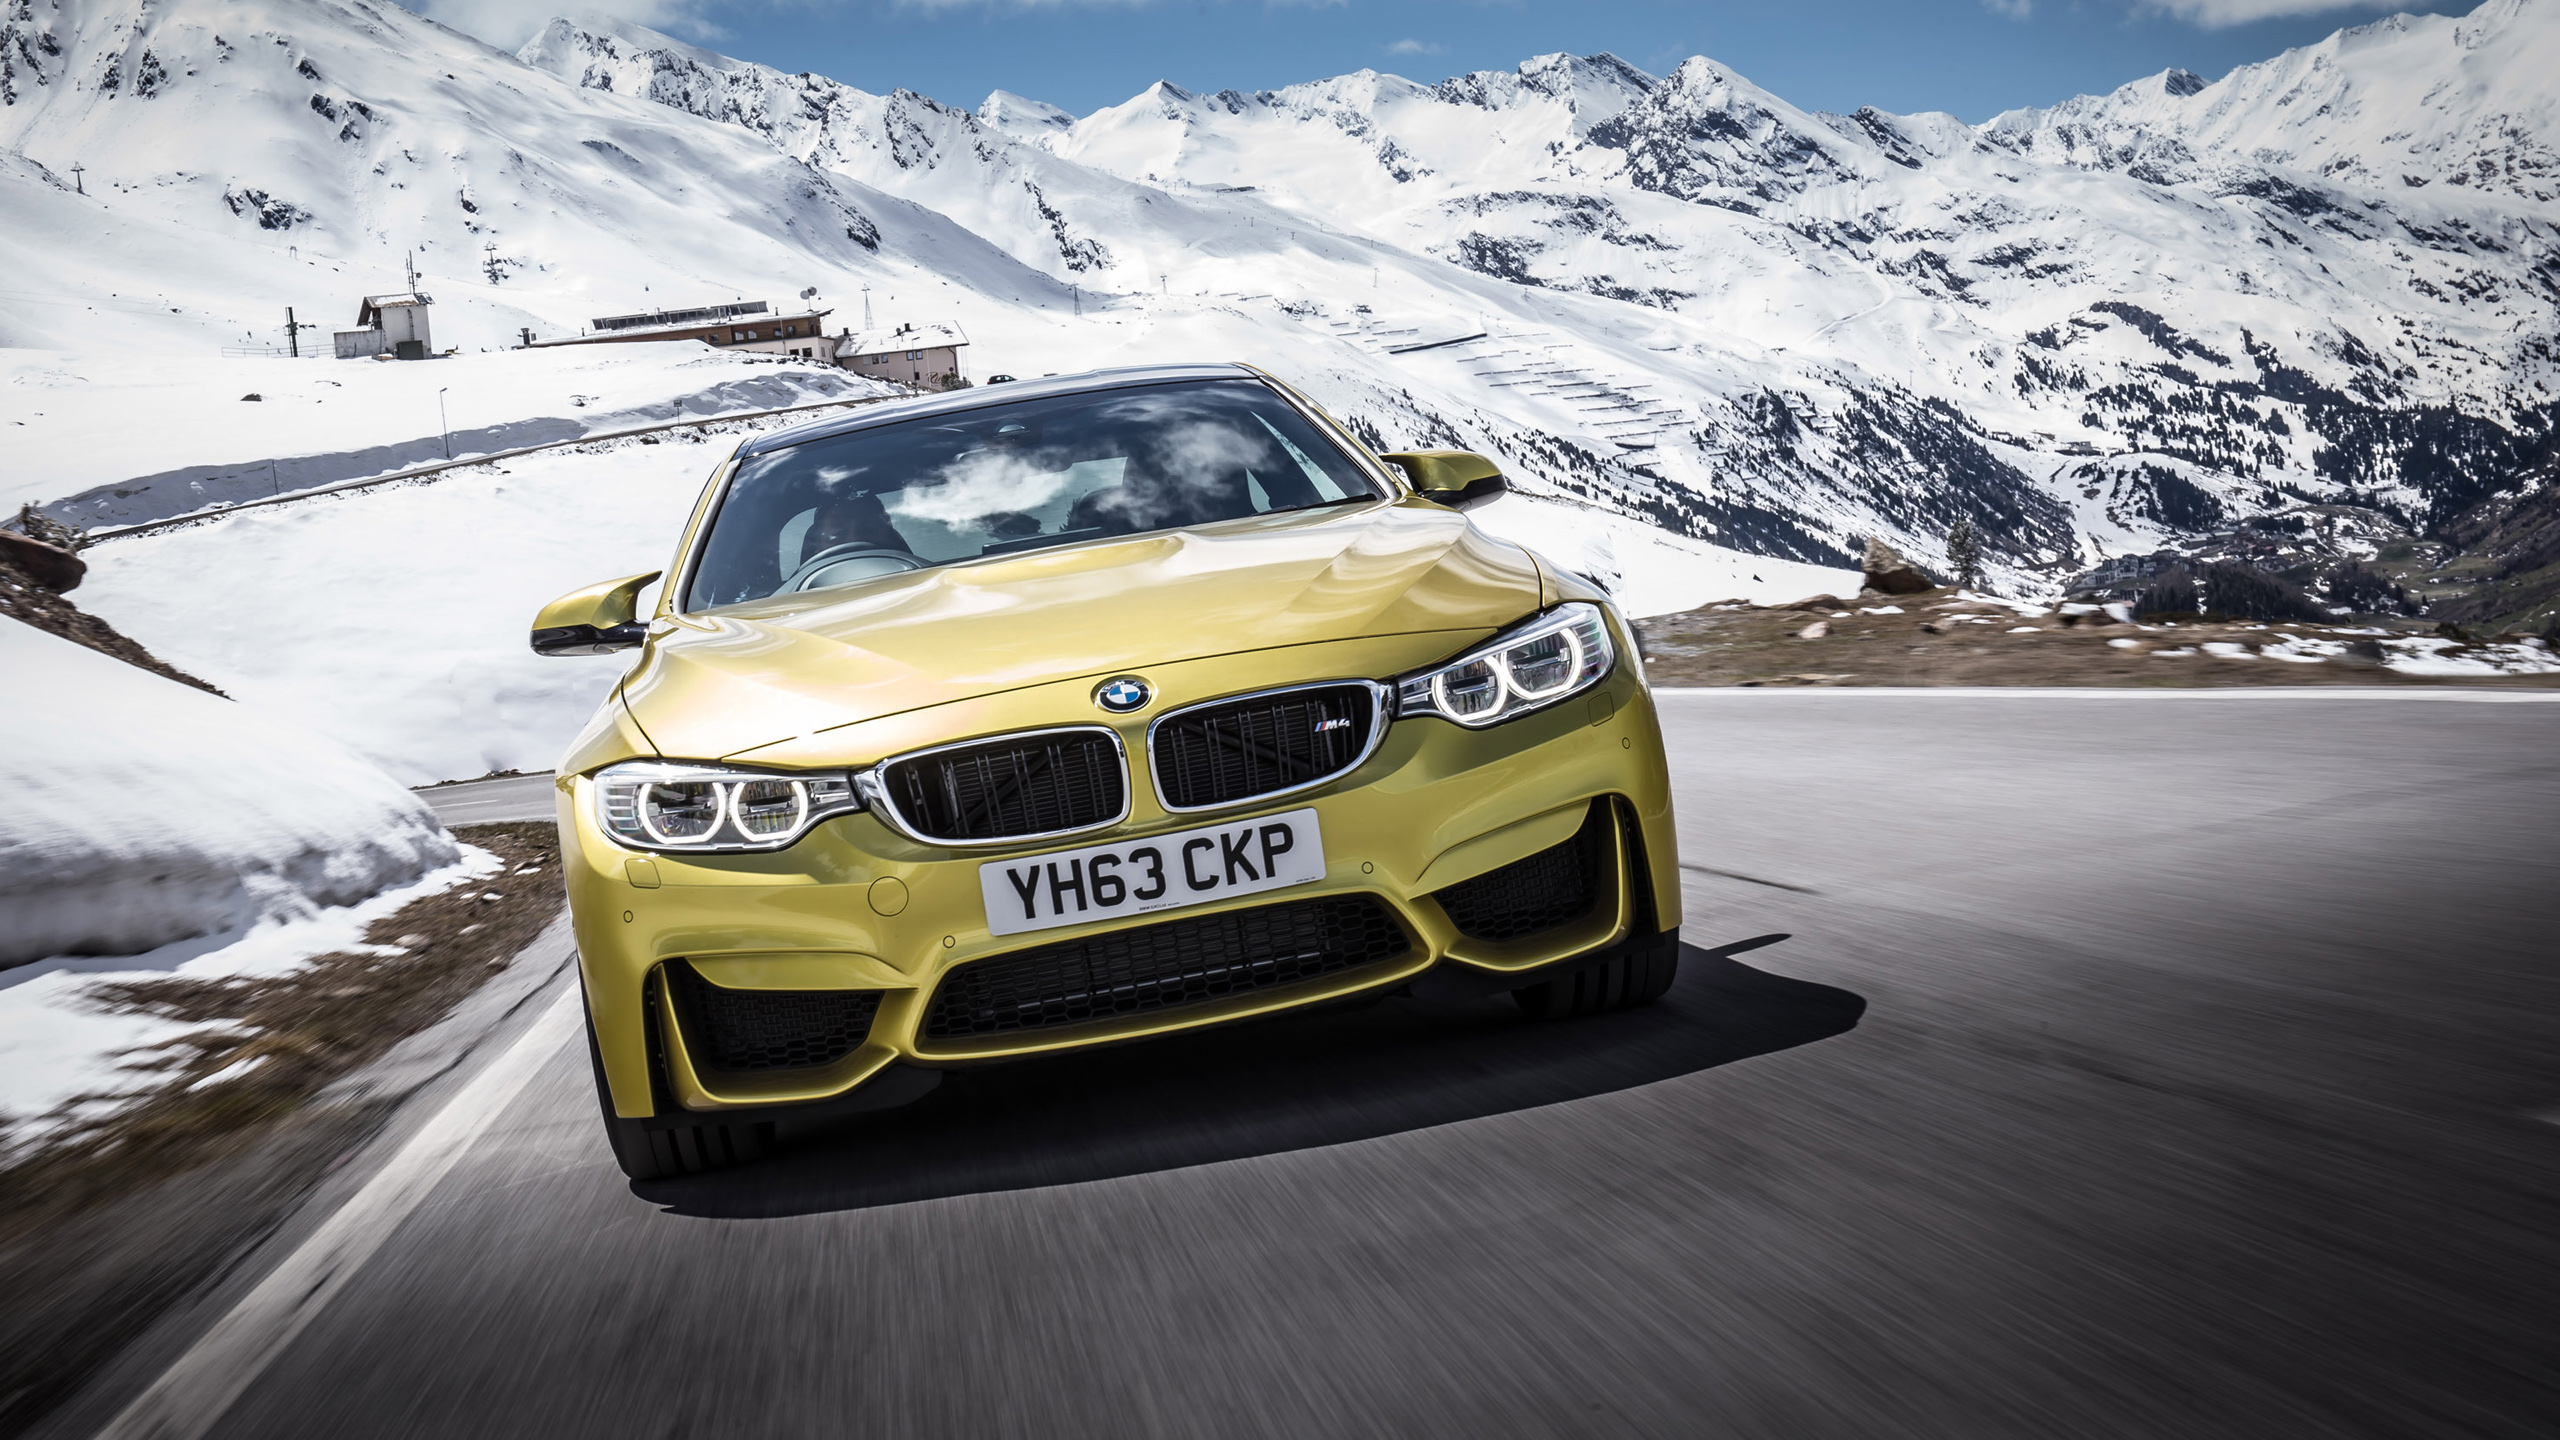 2014 BMW M4 Coupe 2 Wallpaper | HD Car Wallpapers | ID #4634